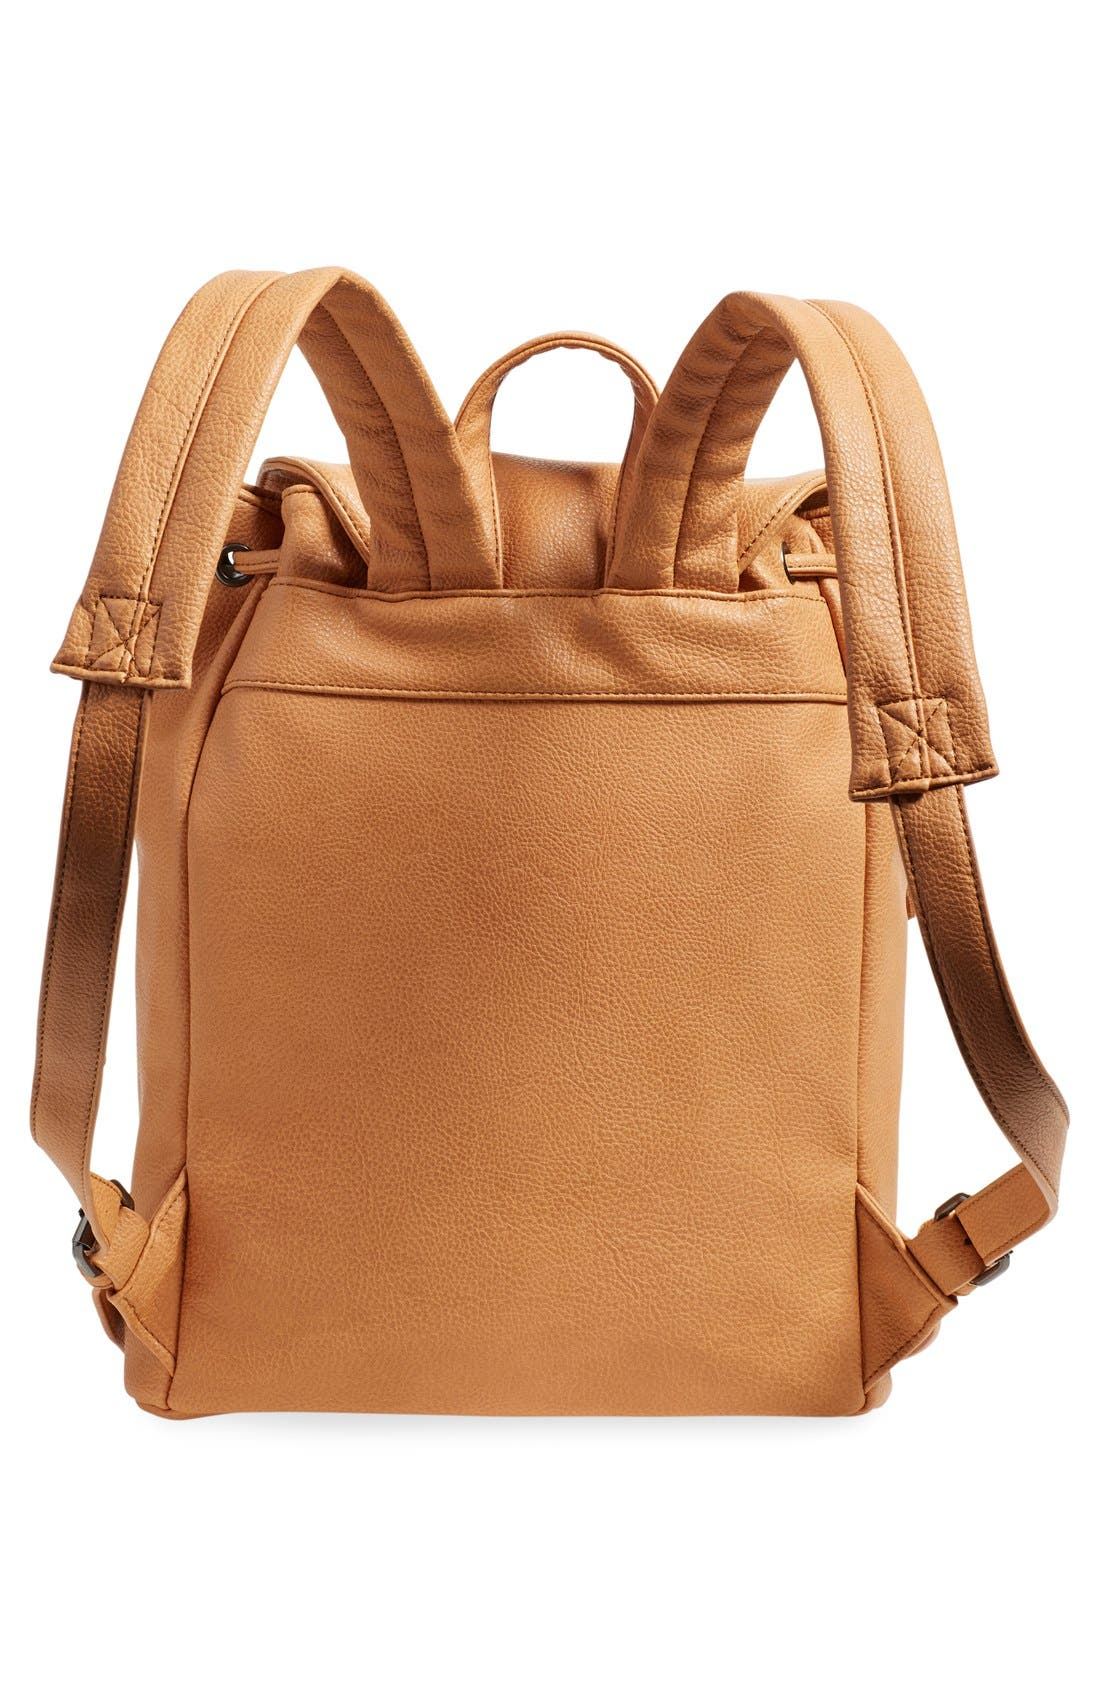 'Hartley' Faux Leather Backpack,                             Alternate thumbnail 3, color,                             Camel